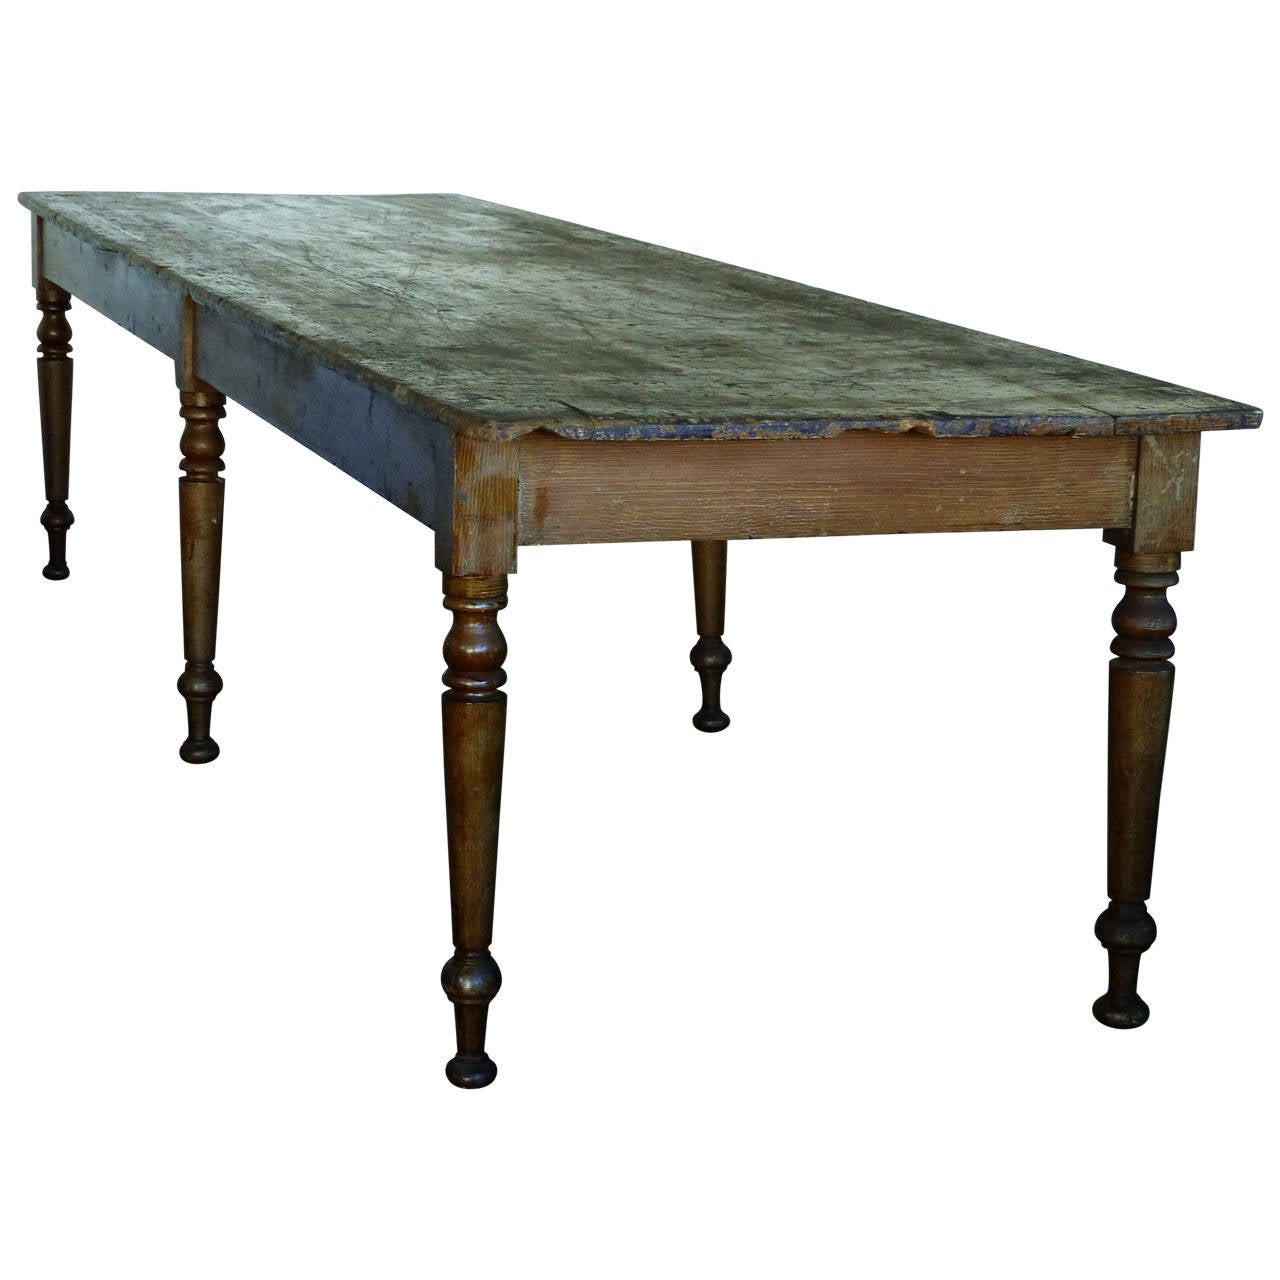 19th c 10 ft convent table at 1stdibs for 10 ft farmhouse table